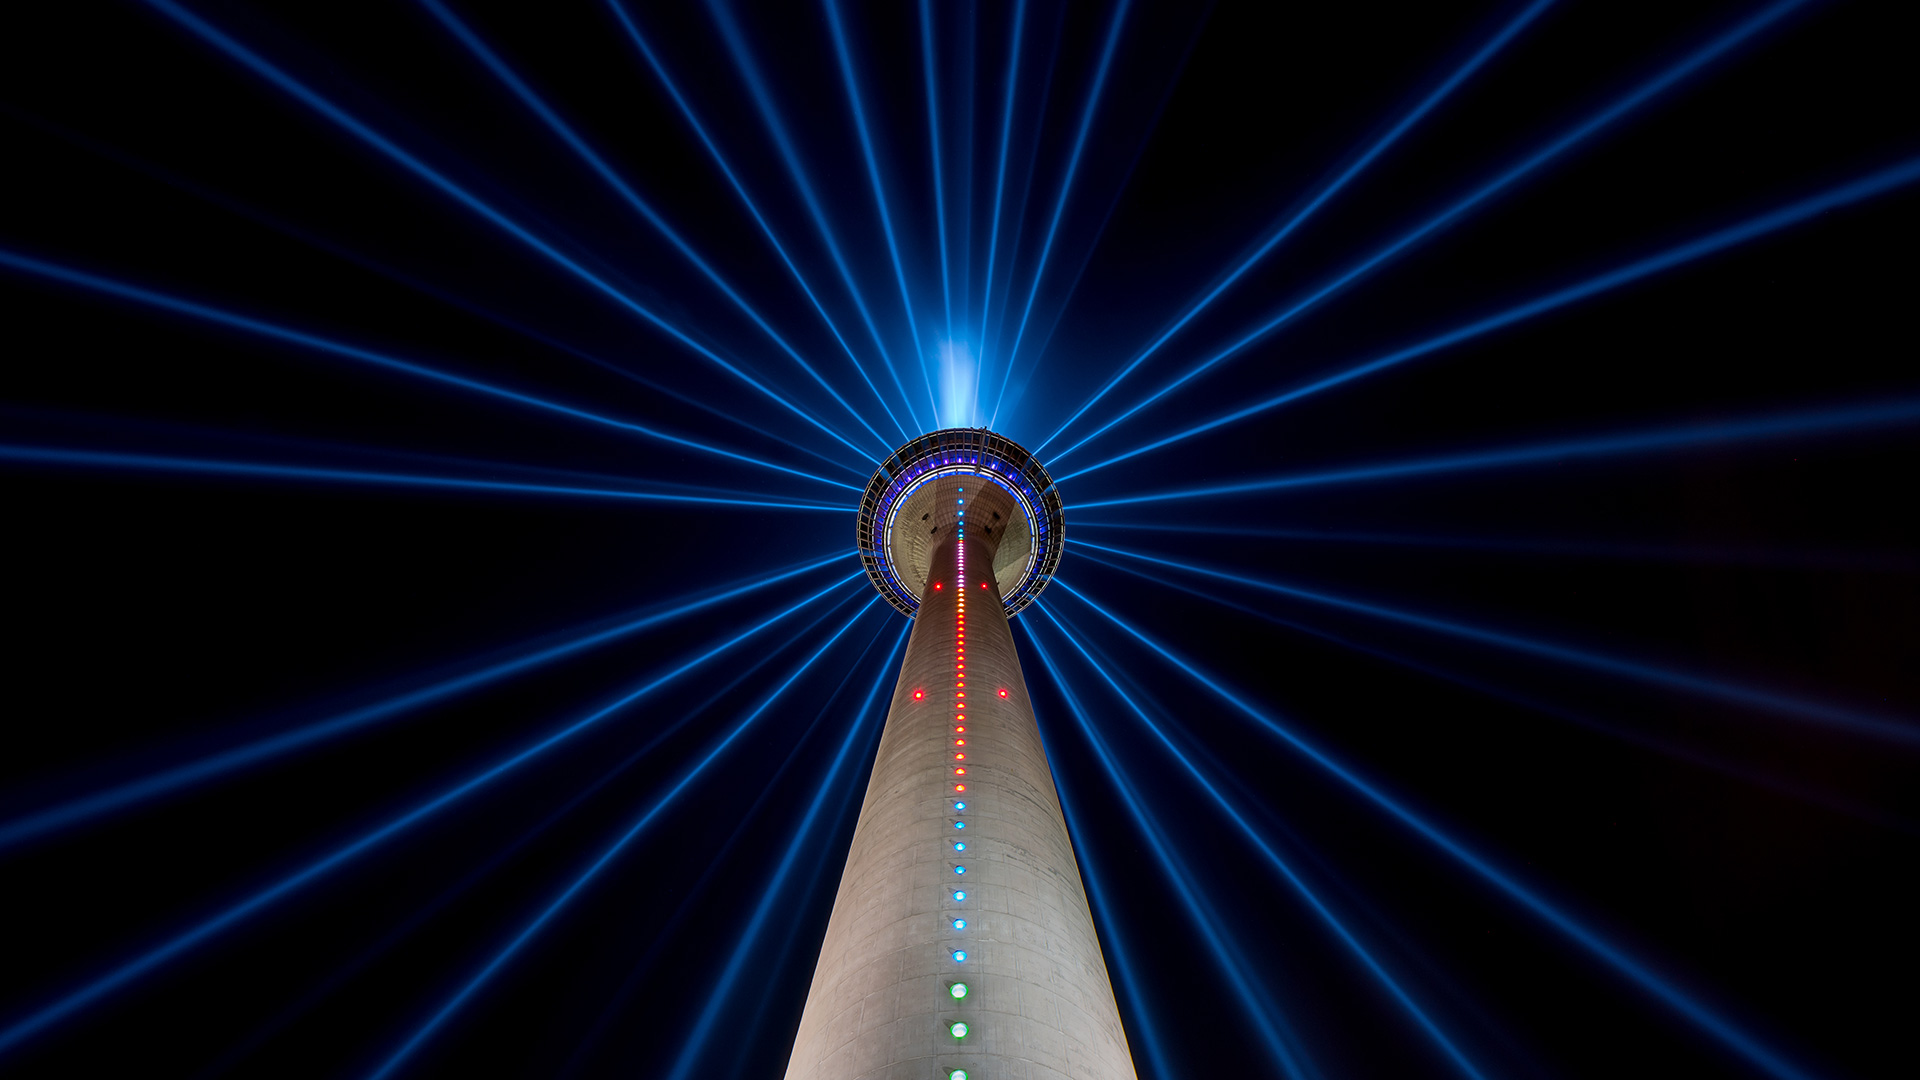 TV Tower Dusseldorf at night, Germany (© r.classen/Shutterstock)